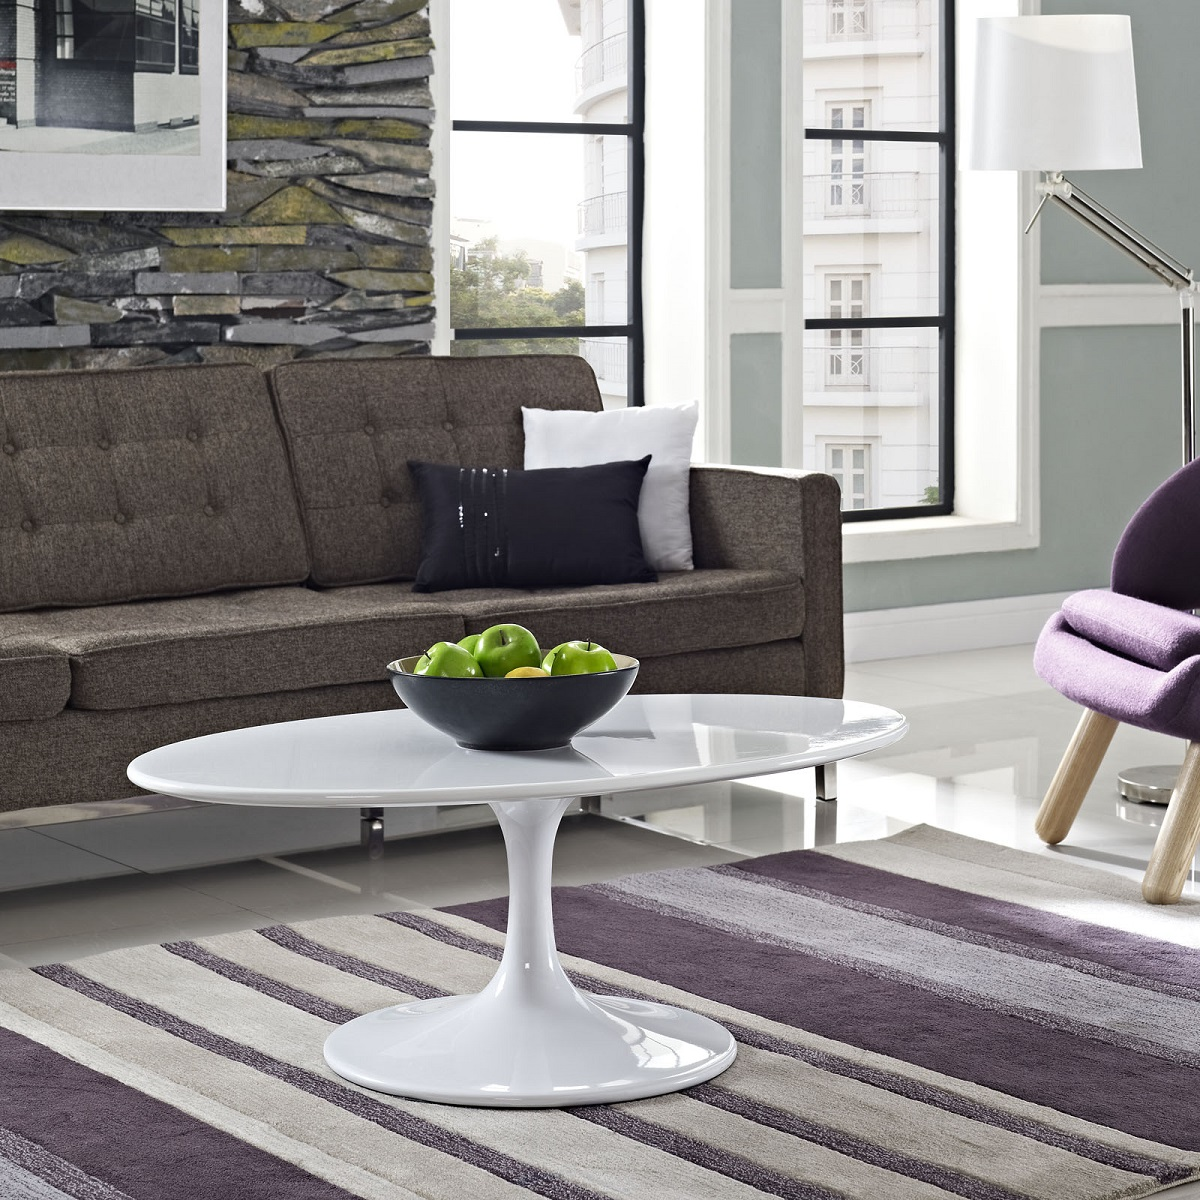 Eerosaarinenovalcoffeetable White Laminate - Saarinen table white laminate